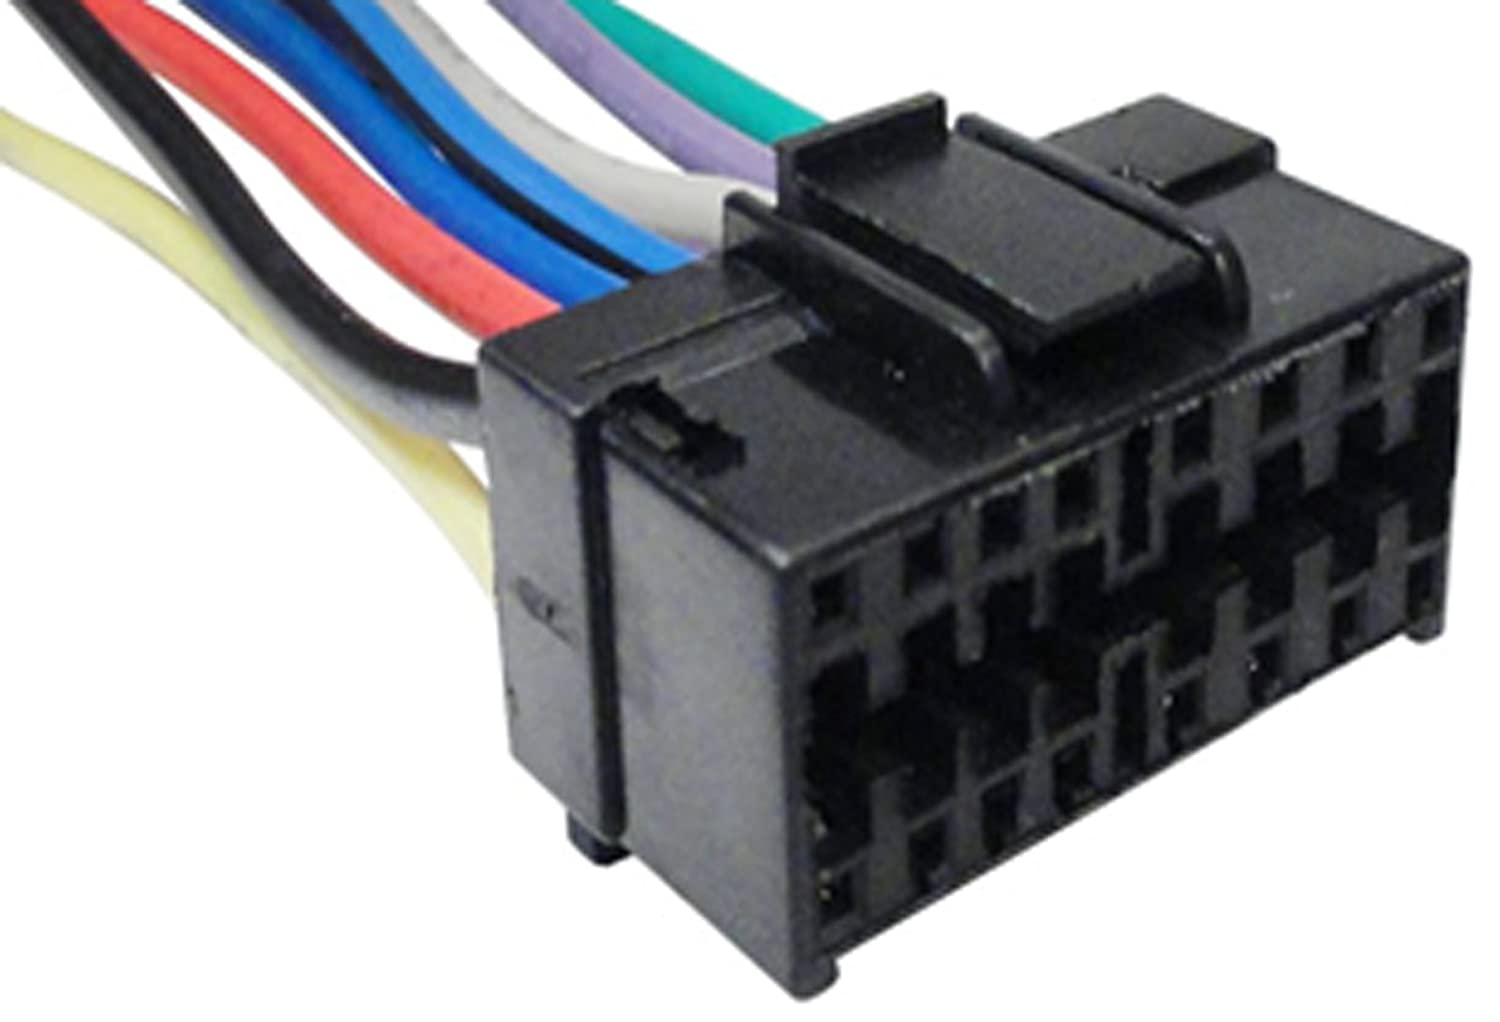 61PGr49b4wL._SL1500_ amazon com sony wiring harness 16 pin copper sy16 automotive  at gsmx.co